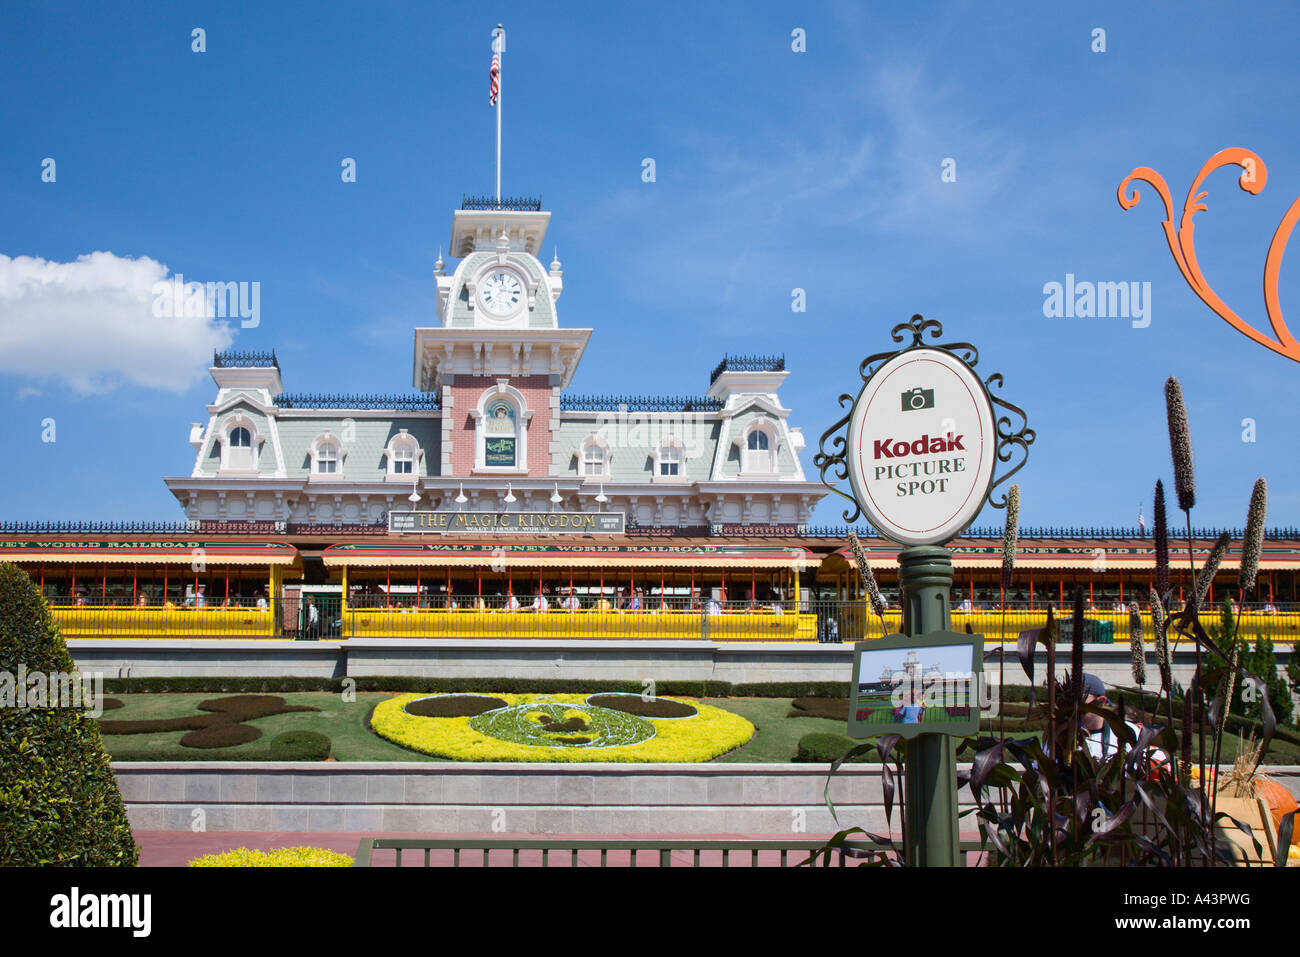 Kodak Picture Spot sign shows park guests best photo opportunities Stock Photo